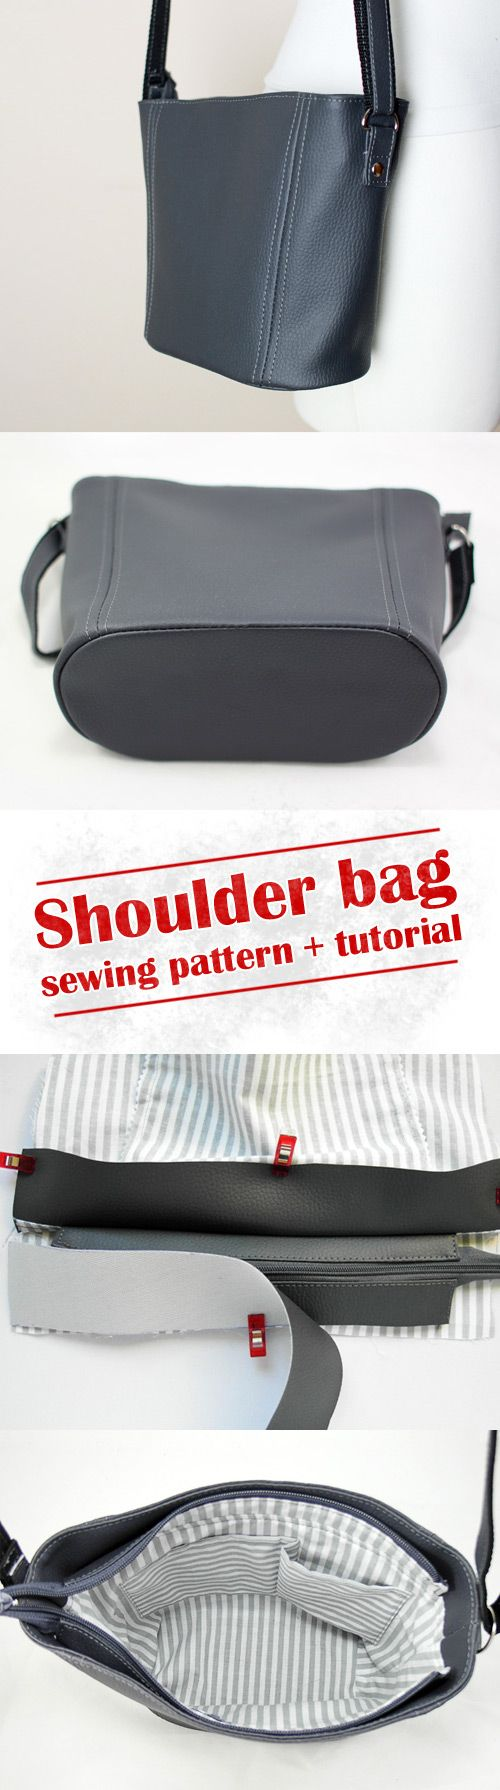 How to sew a faux leather bag, small bag - sewing pattern and tutorial